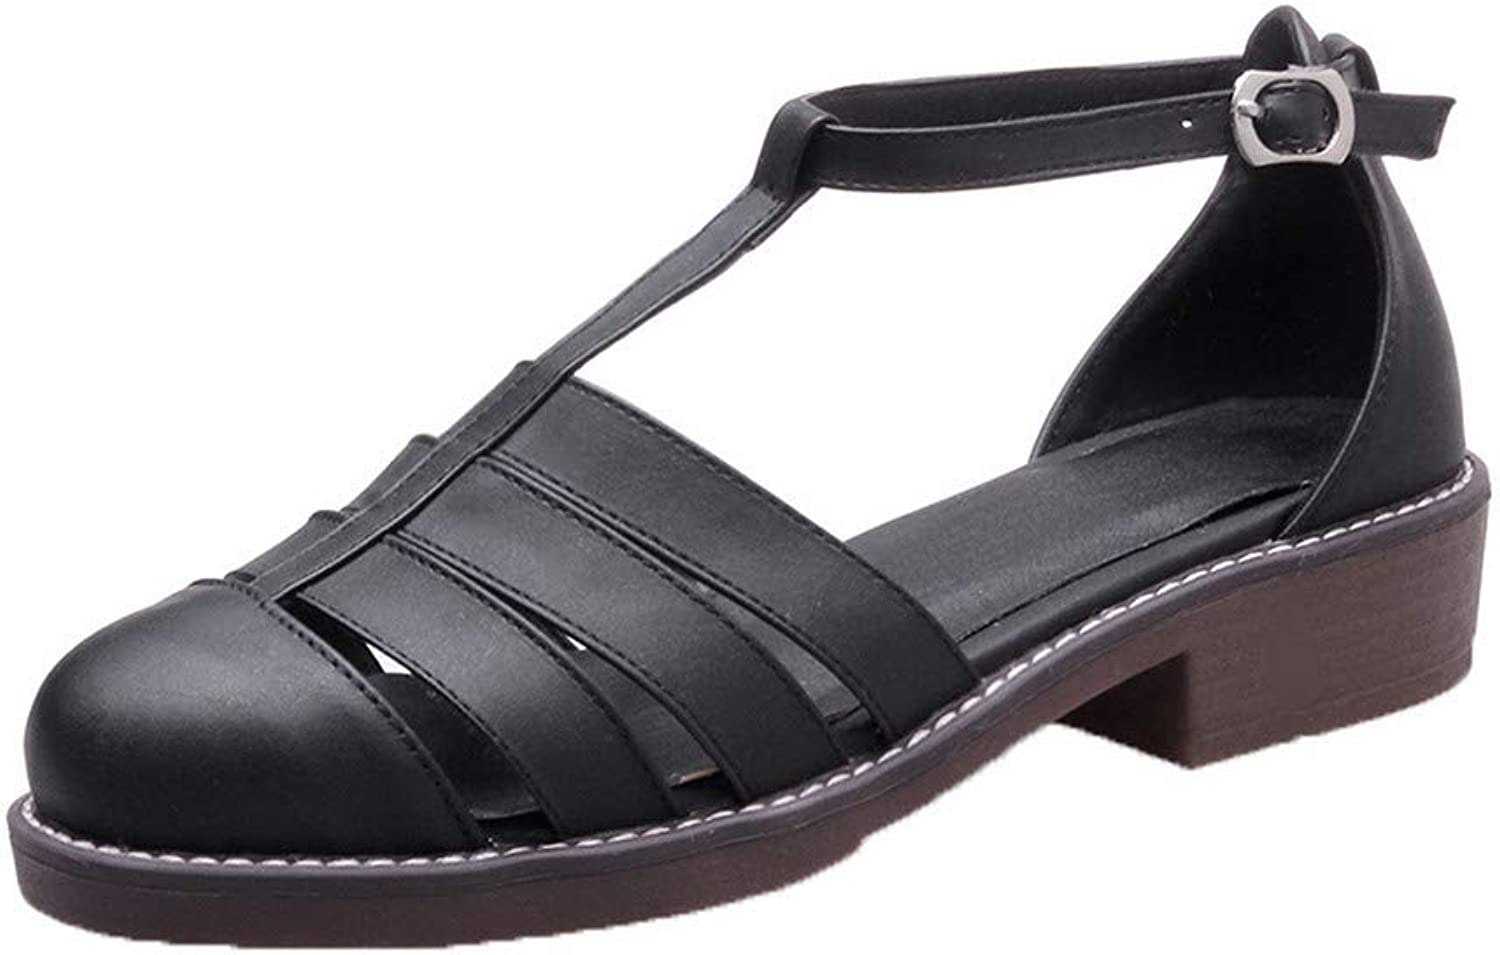 WeiPoot Women's Buckle Low-Heels Pu Solid Round-Toe Sandals, EGHLH007586